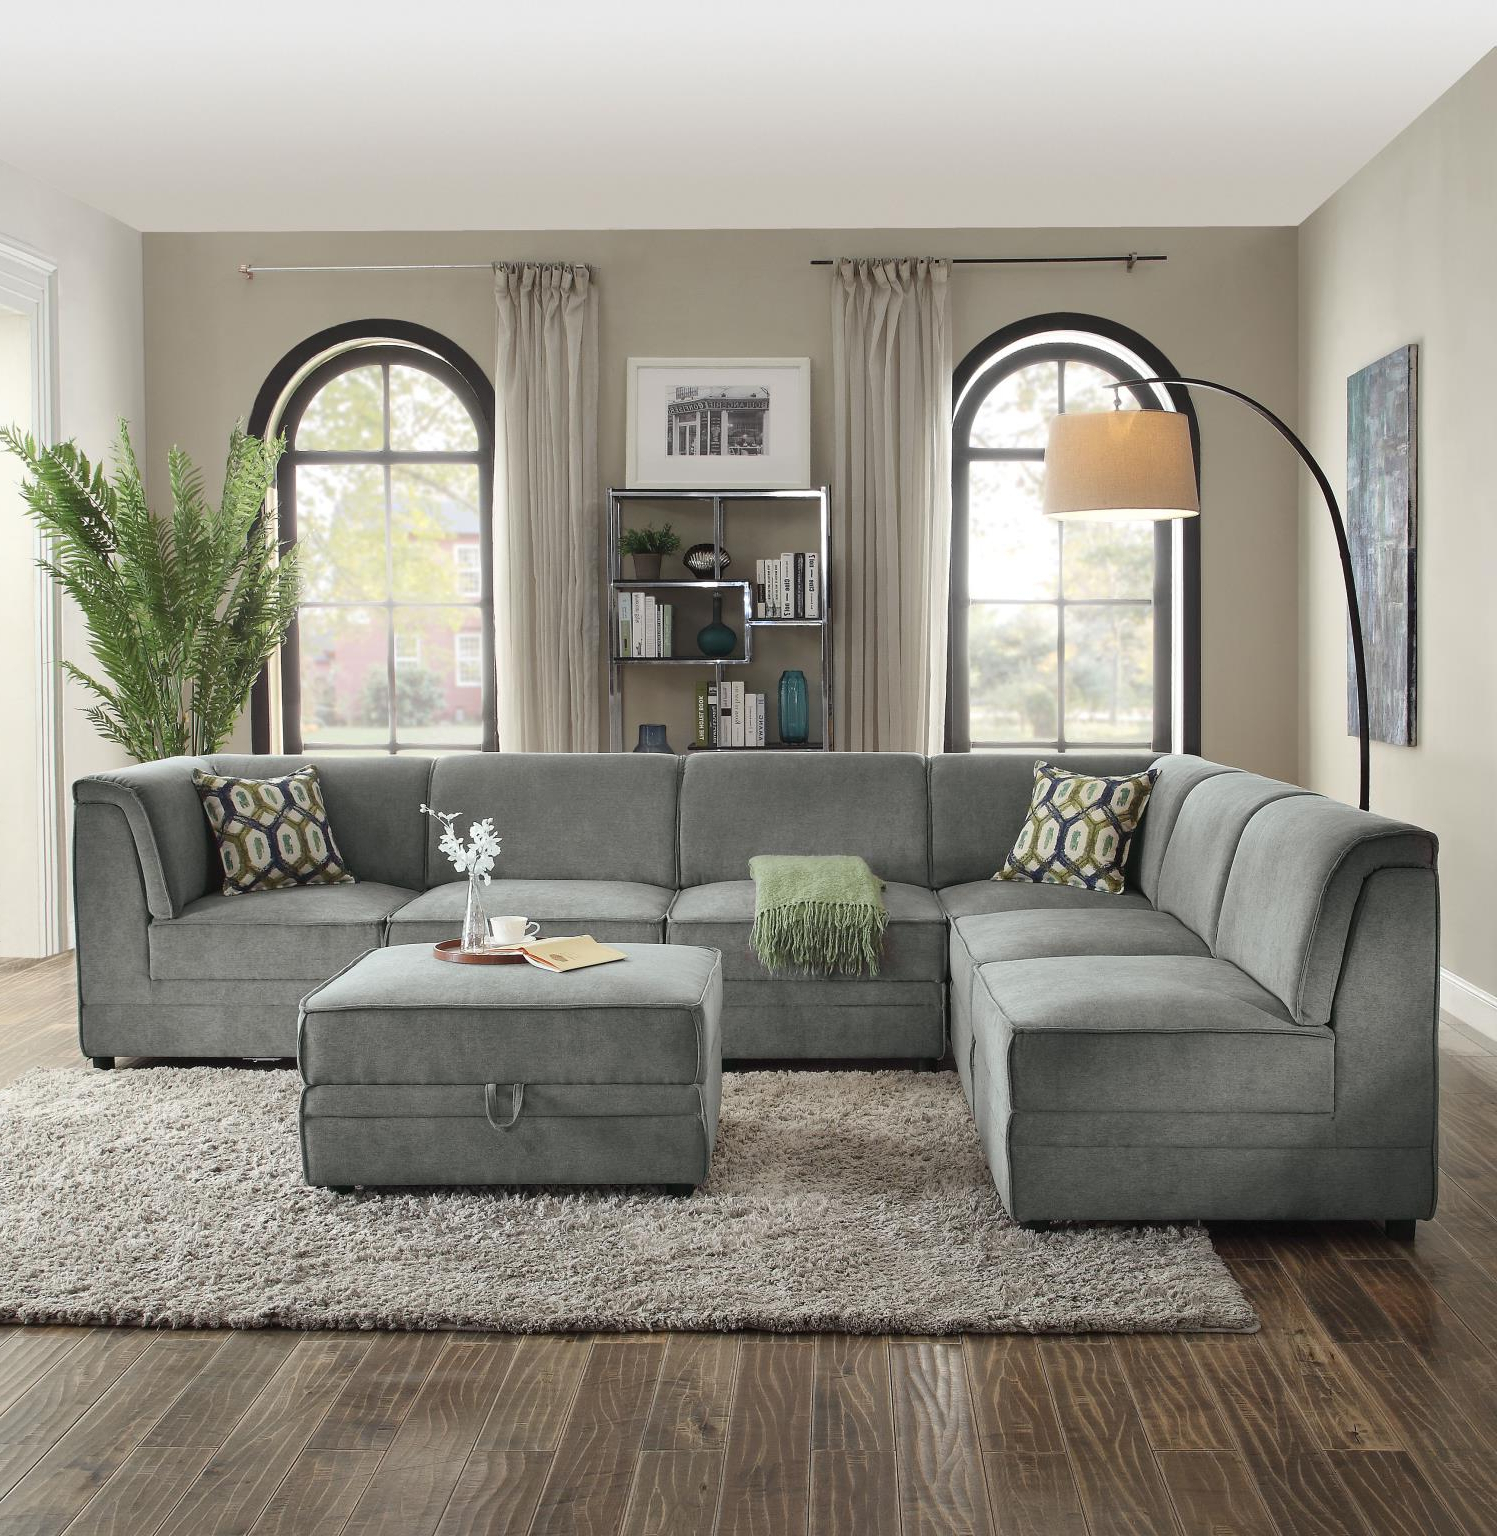 Bois Ii Modular Convertible Sectional Sofa With Ottoman With Preferred Paul Modular Sectional Sofas Blue (View 19 of 20)